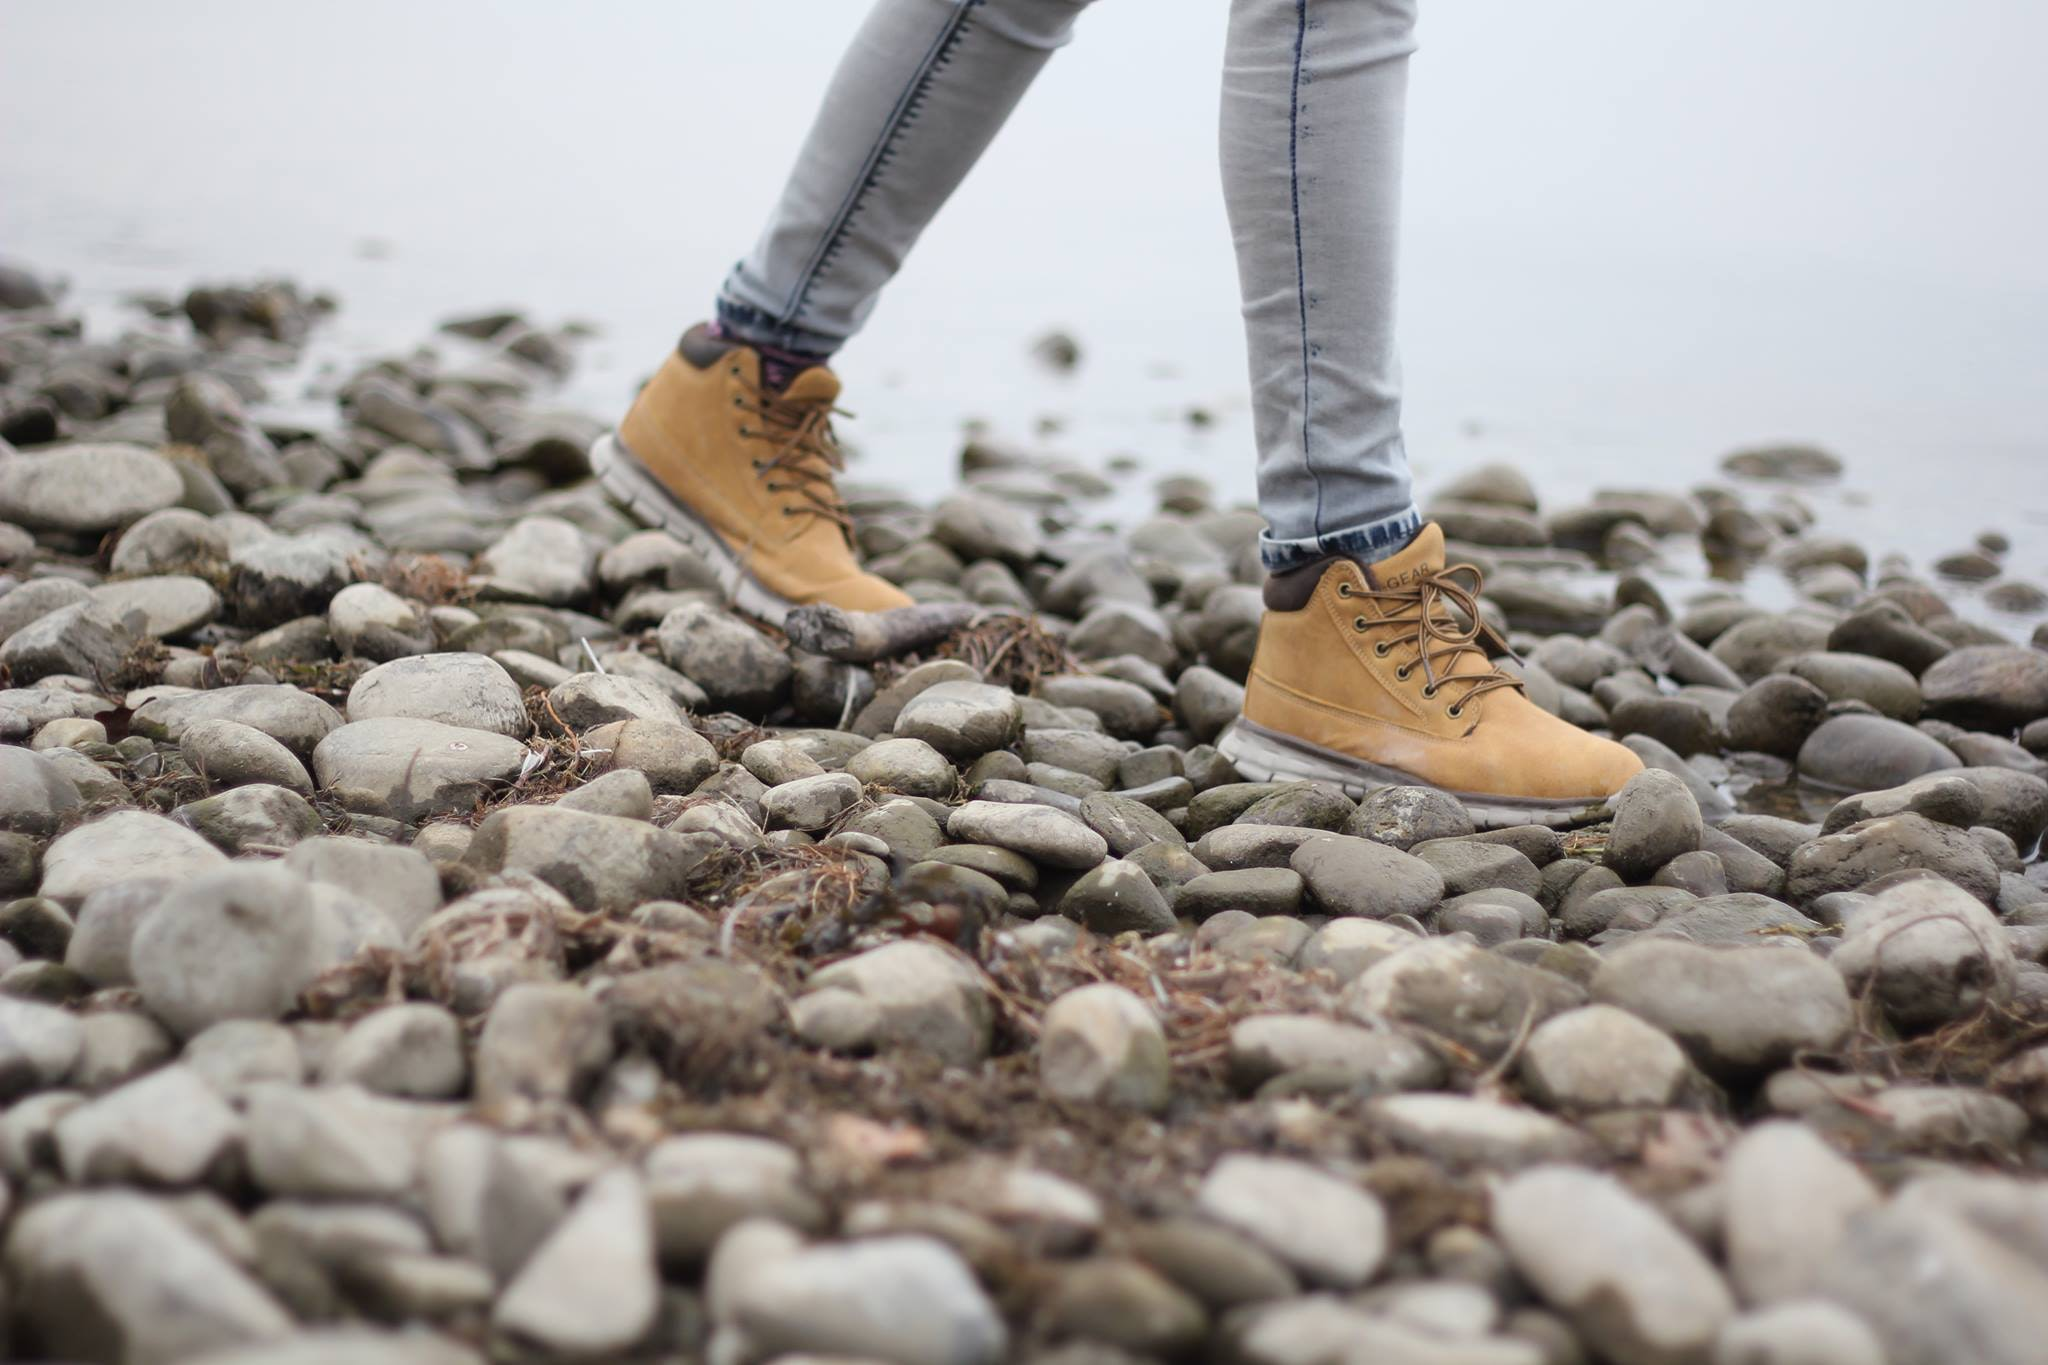 A person walking in brown boots across large pebbles by a river in Rohrspitz